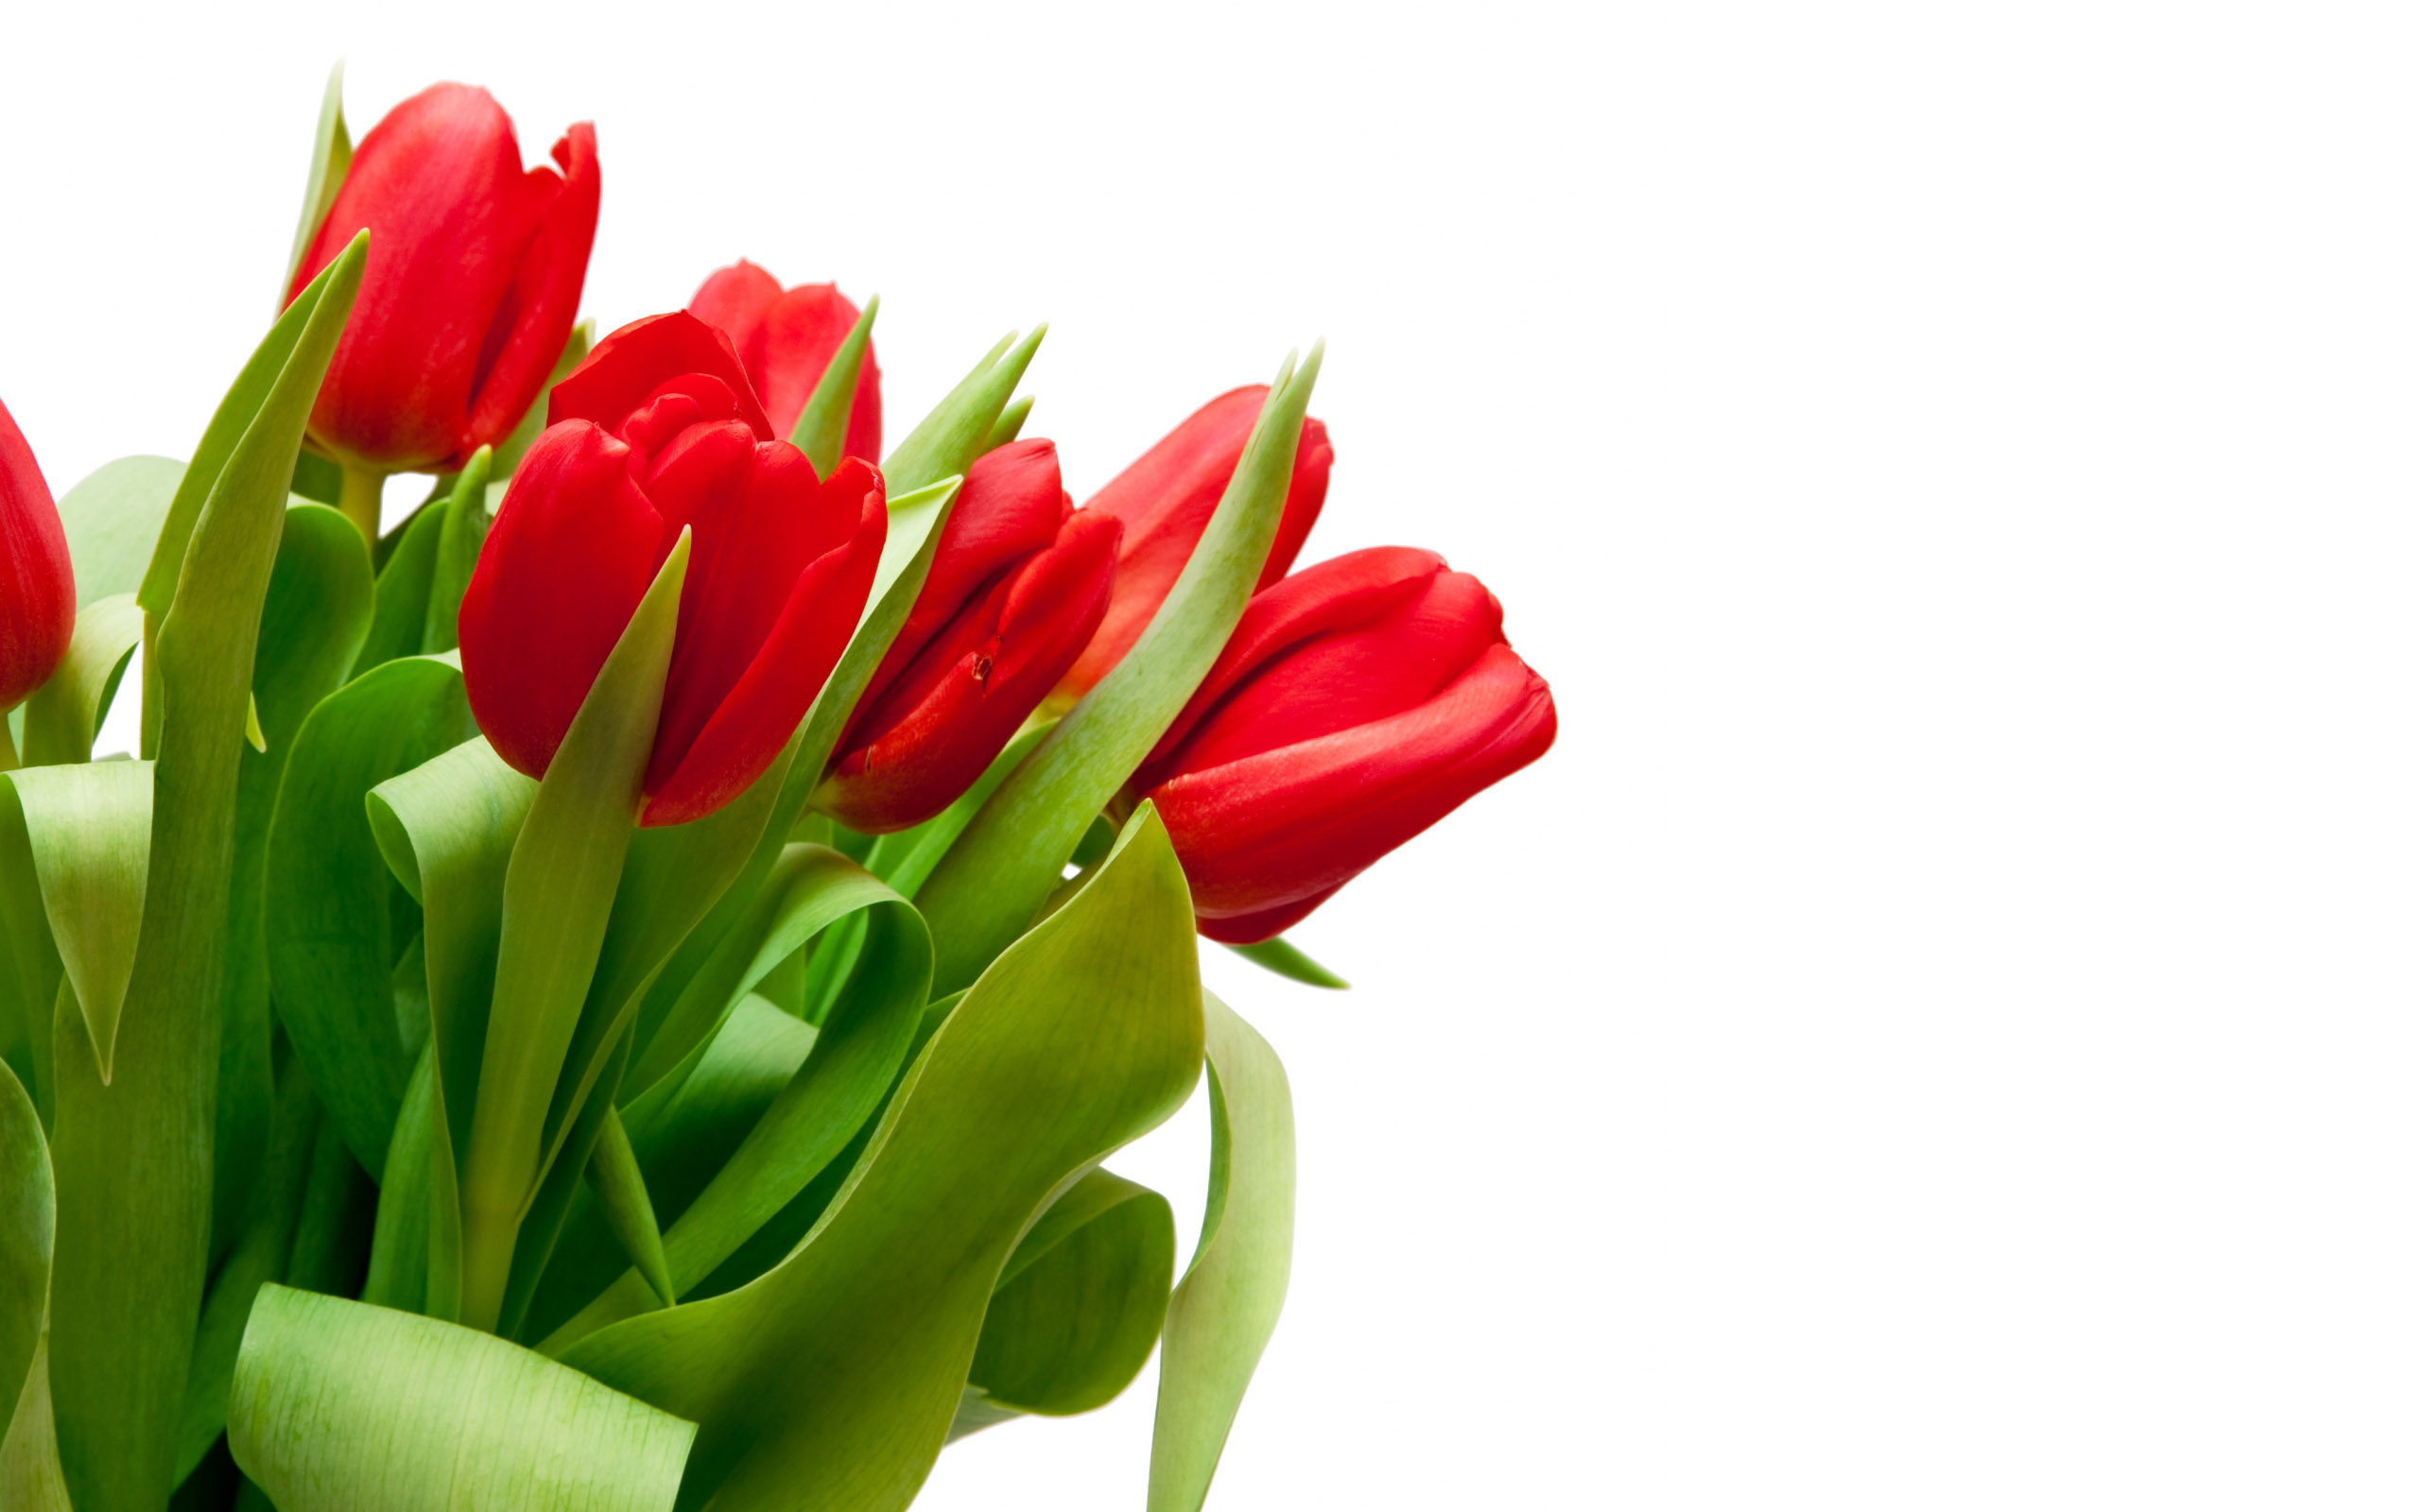 red tulips wallpaper 44629